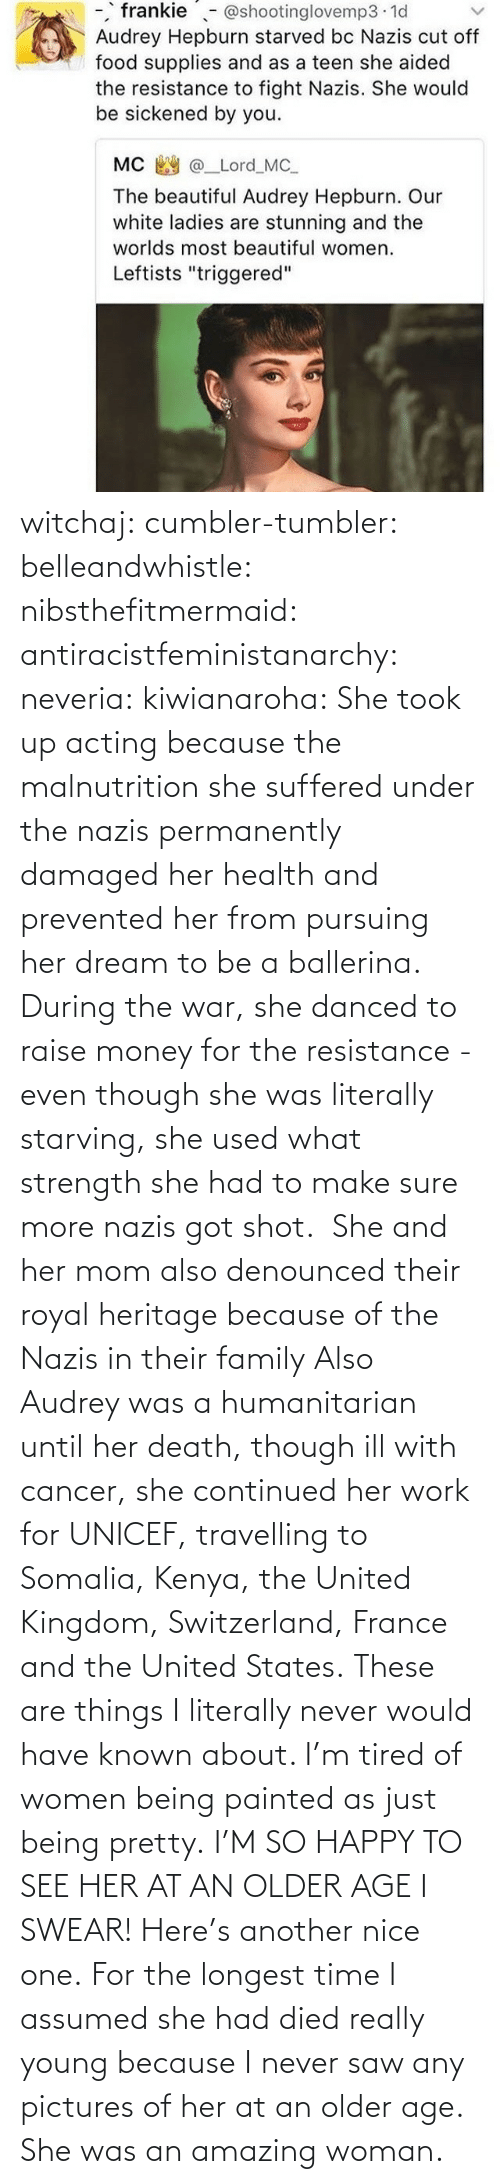 shot: witchaj: cumbler-tumbler:  belleandwhistle:  nibsthefitmermaid:  antiracistfeministanarchy:  neveria:  kiwianaroha: She took up acting because the malnutrition she suffered under the nazis permanently damaged her health and prevented her from pursuing her dream to be a ballerina. During the war, she danced to raise money for the resistance - even though she was literally starving, she used what strength she had to make sure more nazis got shot.  She and her mom also denounced their royal heritage because of the Nazis in their family  Also Audrey was a humanitarian until her death, though ill with cancer, she continued her work for UNICEF, travelling to Somalia, Kenya, the United Kingdom, Switzerland, France and the United States.  These are things I literally never would have known about. I'm tired of women being painted as just being pretty.  I'M SO HAPPY TO SEE HER AT AN OLDER AGE I SWEAR!  Here's another nice one.   For the longest time I assumed she had died really young because I never saw any pictures of her at an older age.  She was an amazing woman.